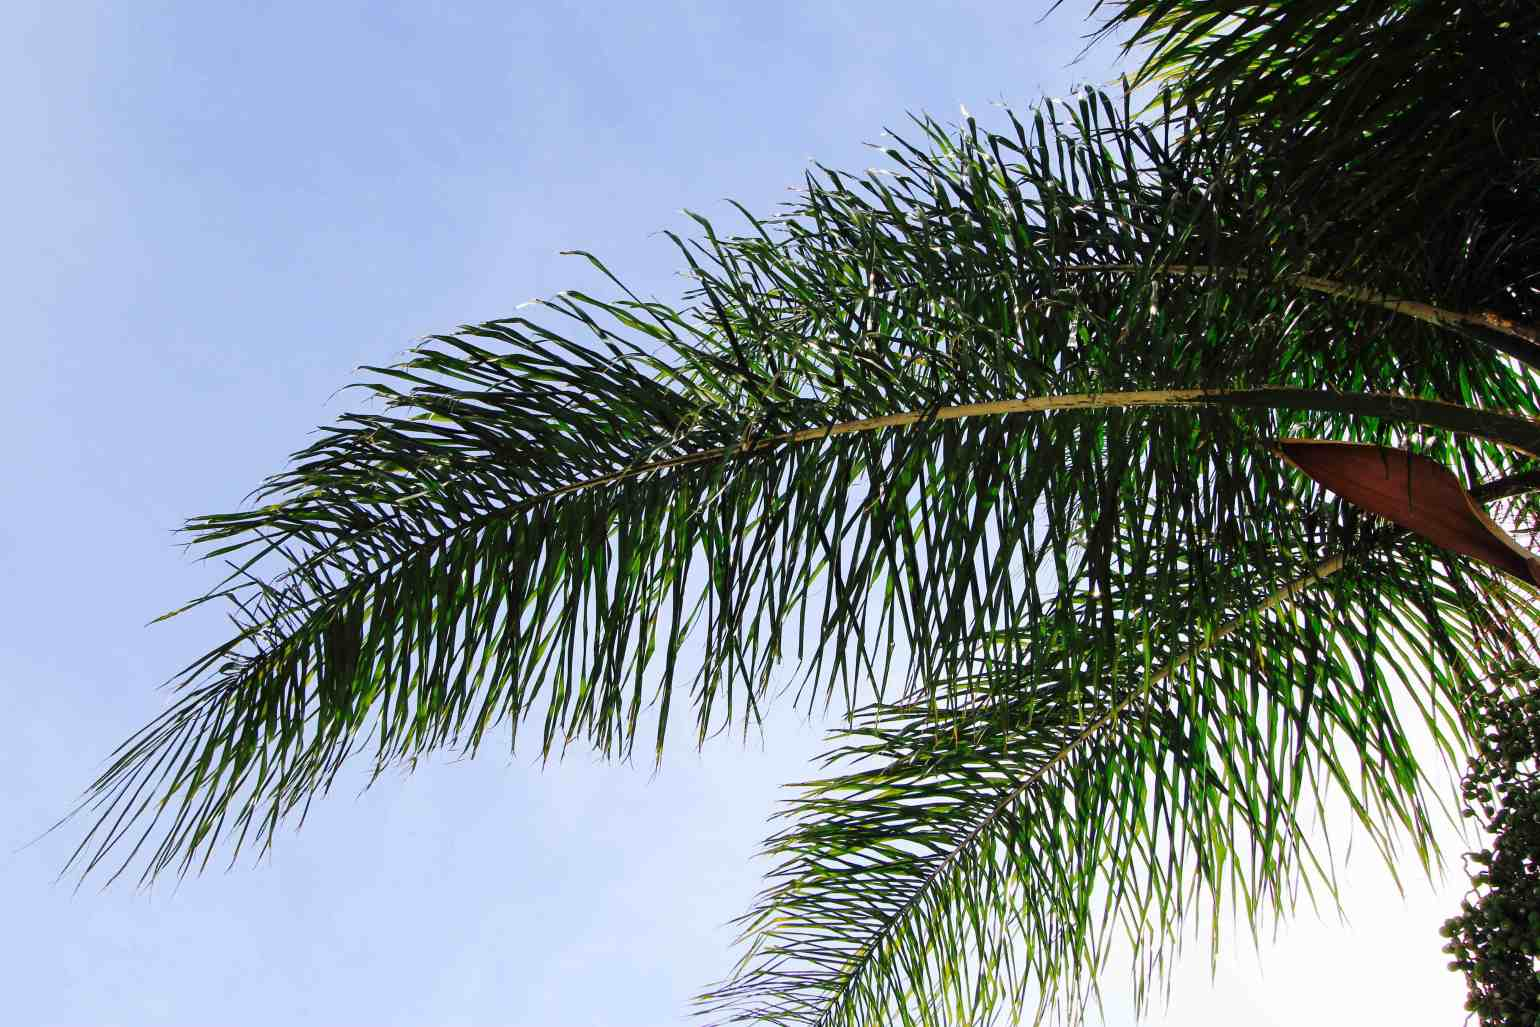 Palm leaves - 1 copy